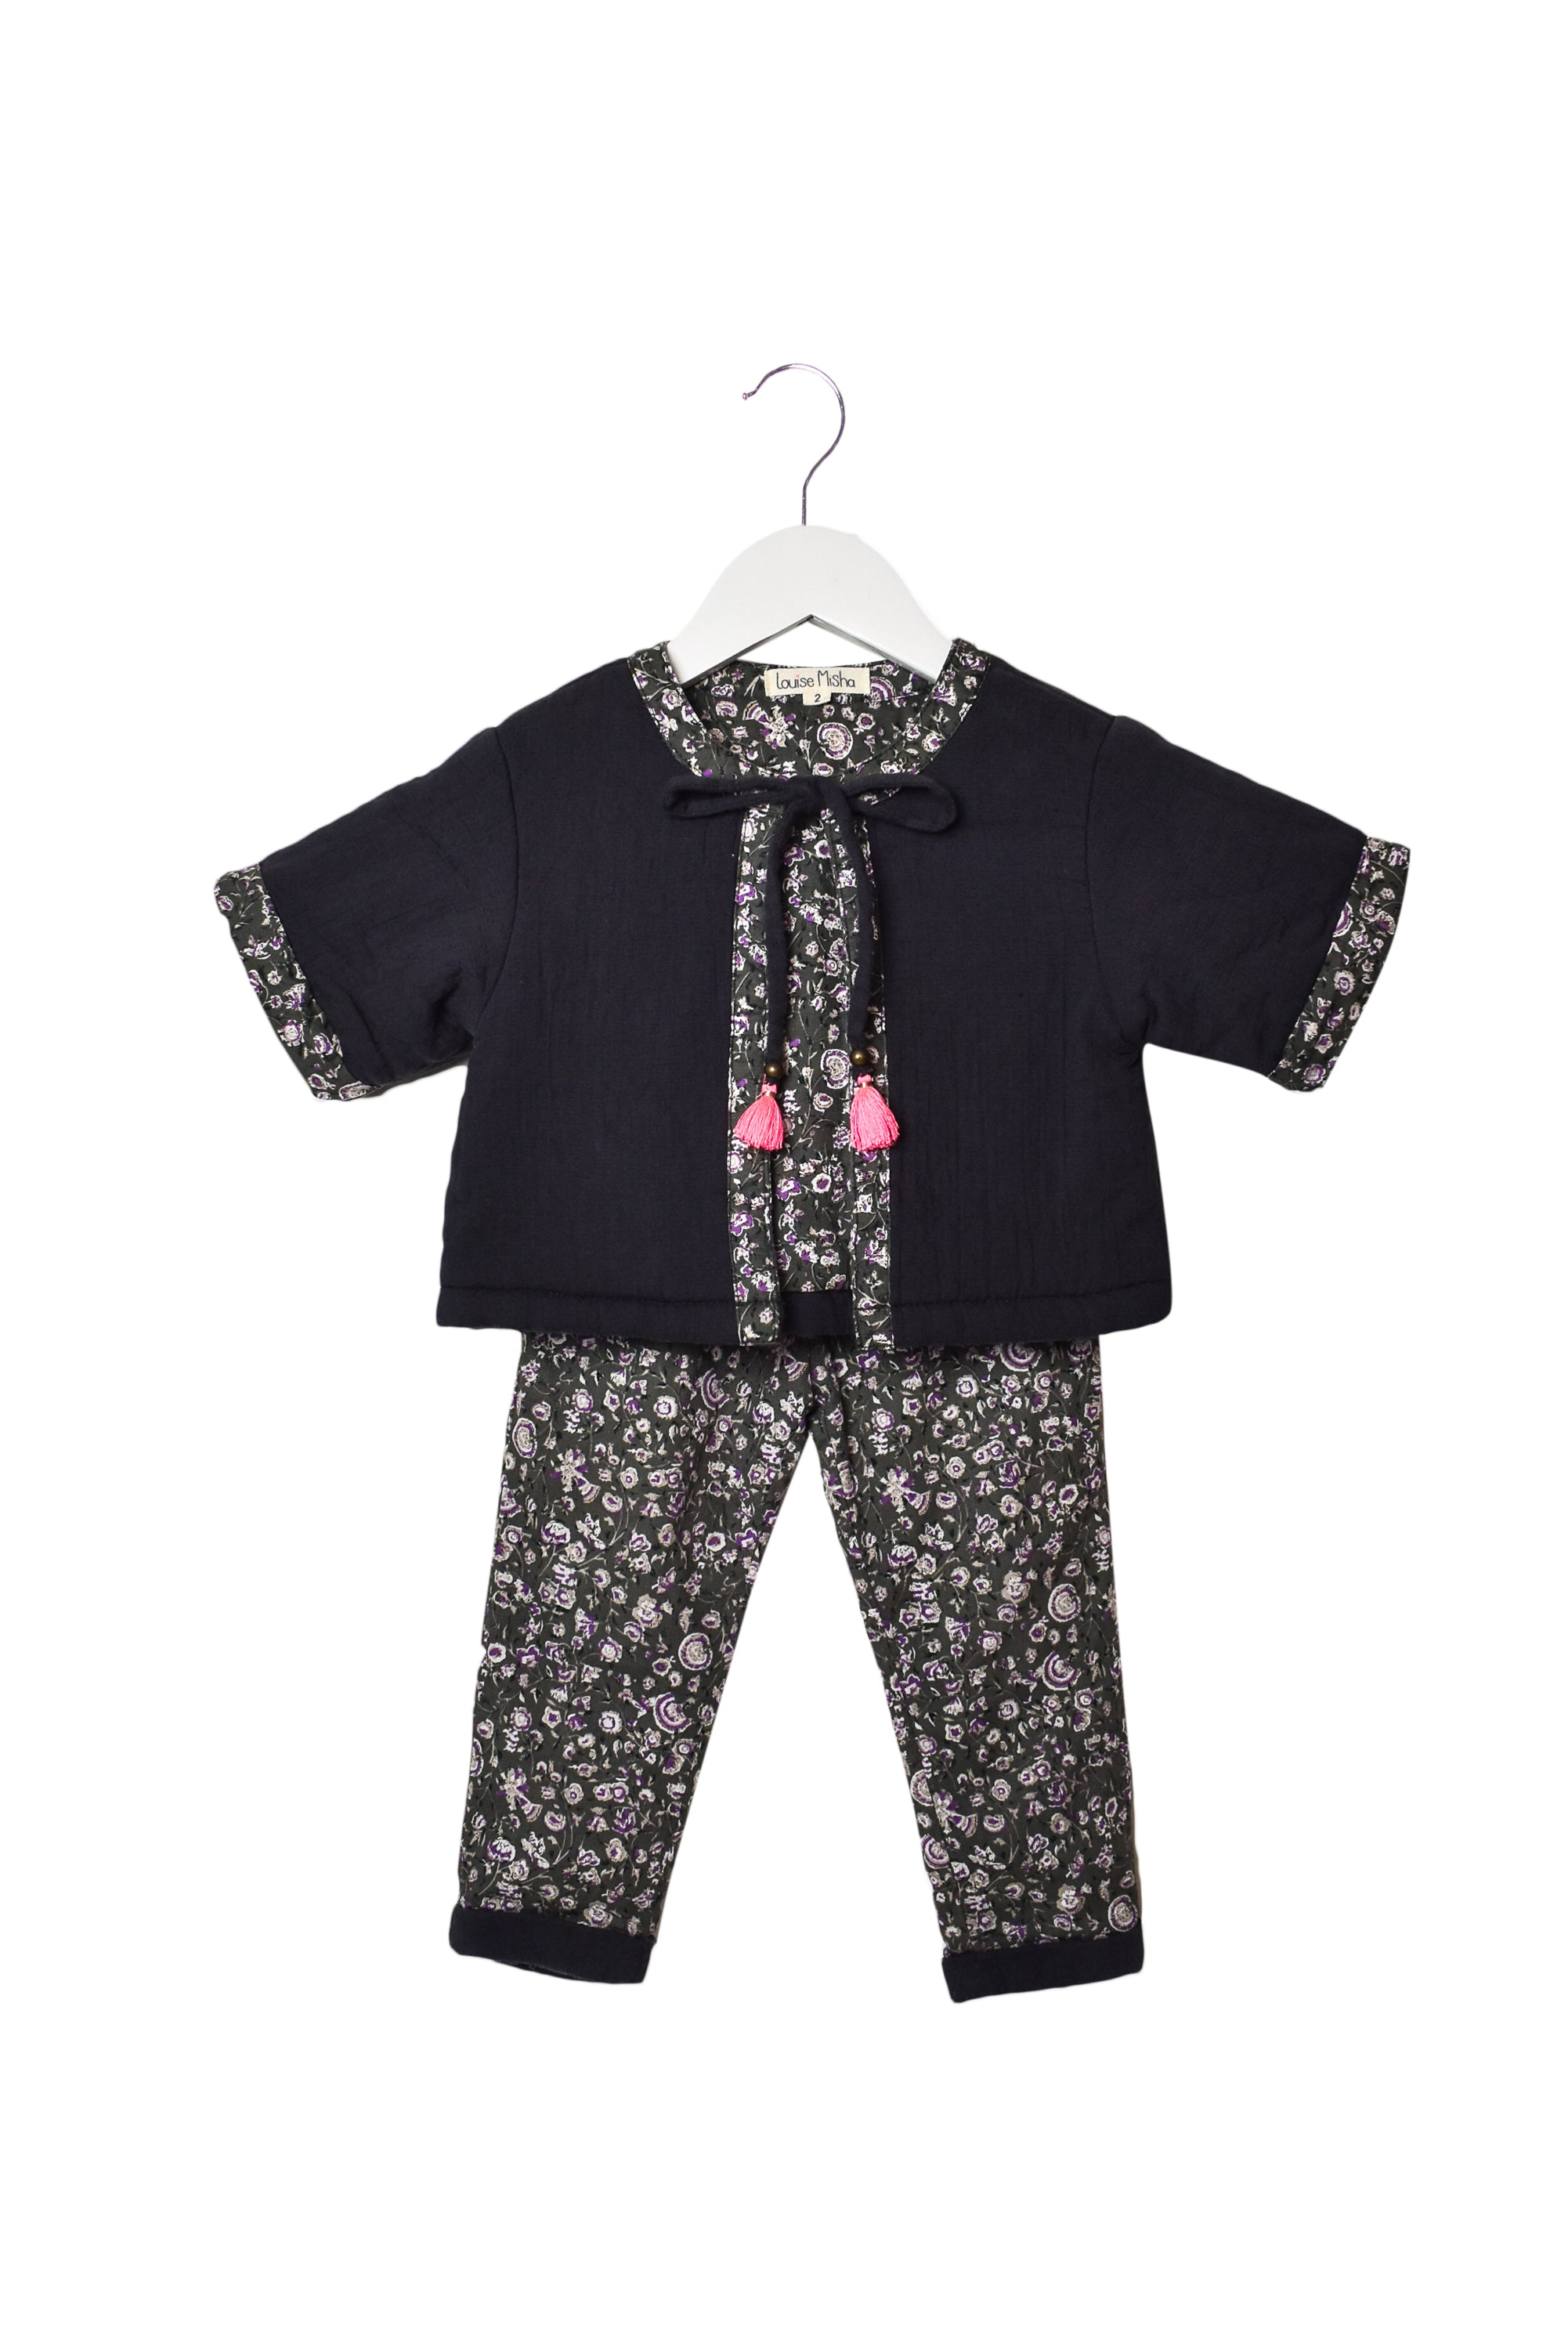 10007929 Louise Misha Kids~ Jacket and Pants 2T at Retykle